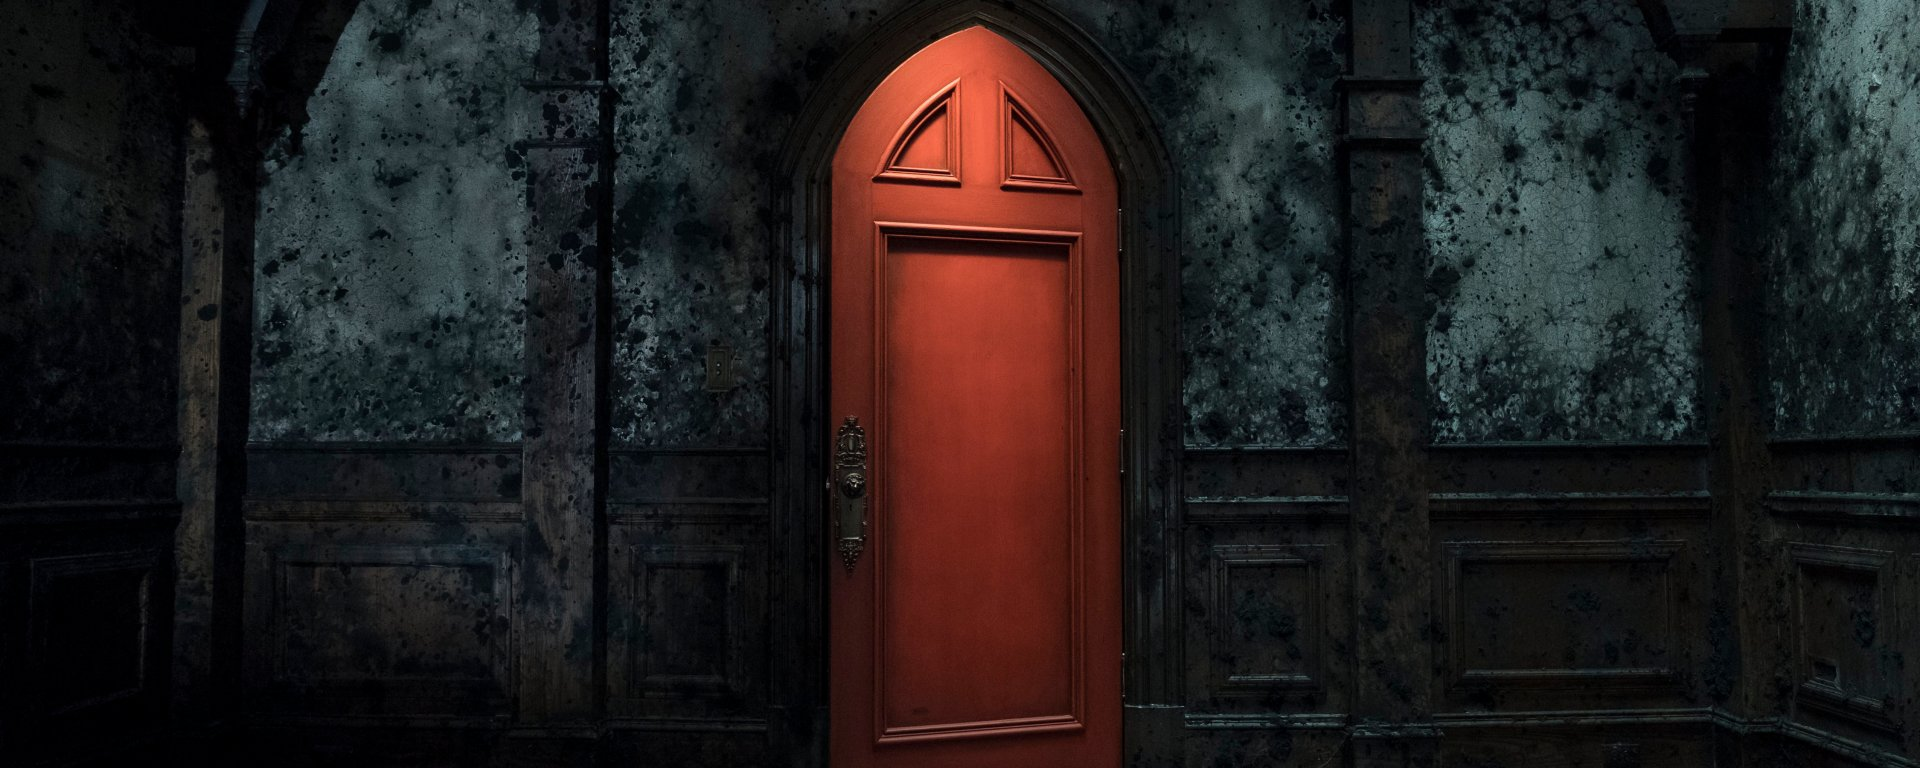 The Haunting of Hill House - CineFatti